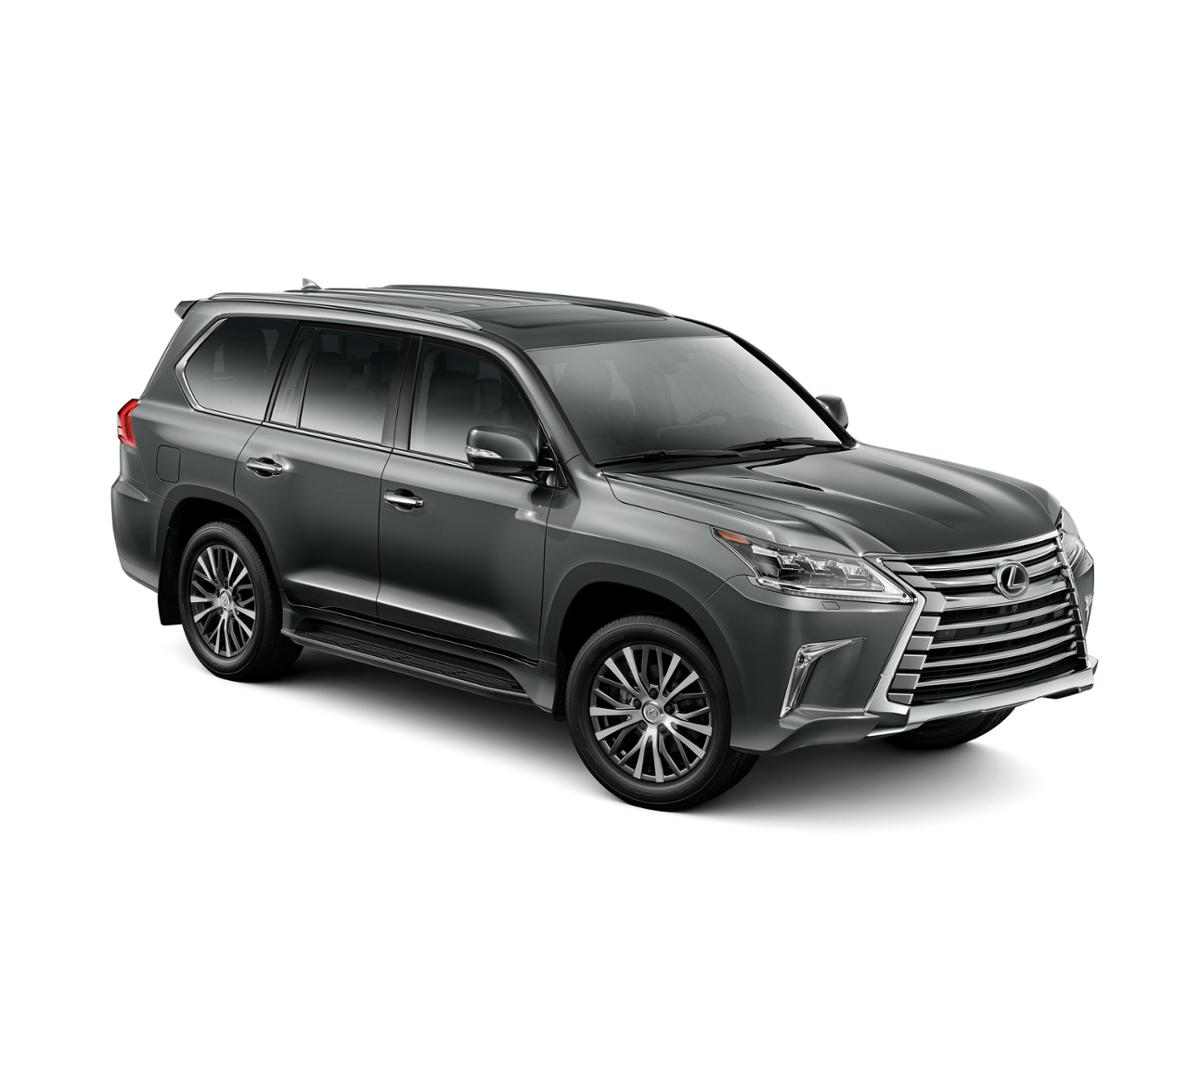 2018 Lexus LX 570 Vehicle Photo in Henderson, NV 89011